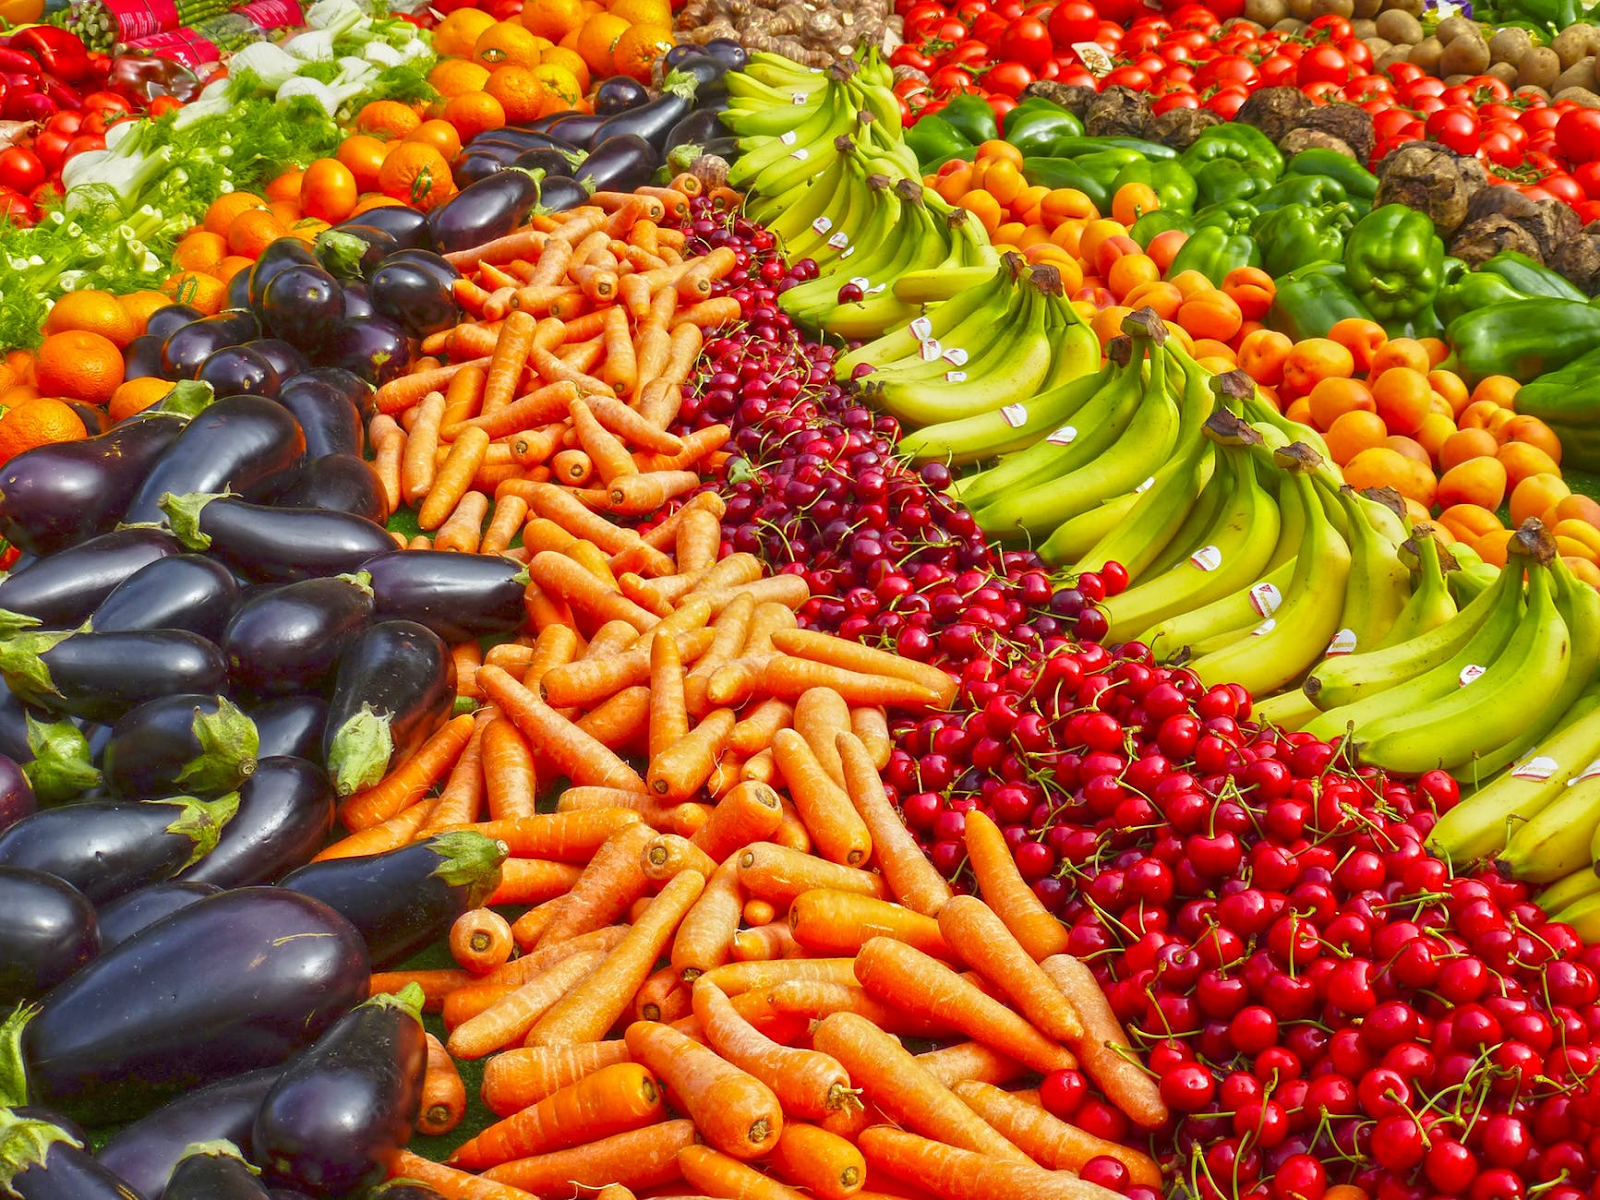 Preventing Listeria Outbreaks in Food Facilities 2